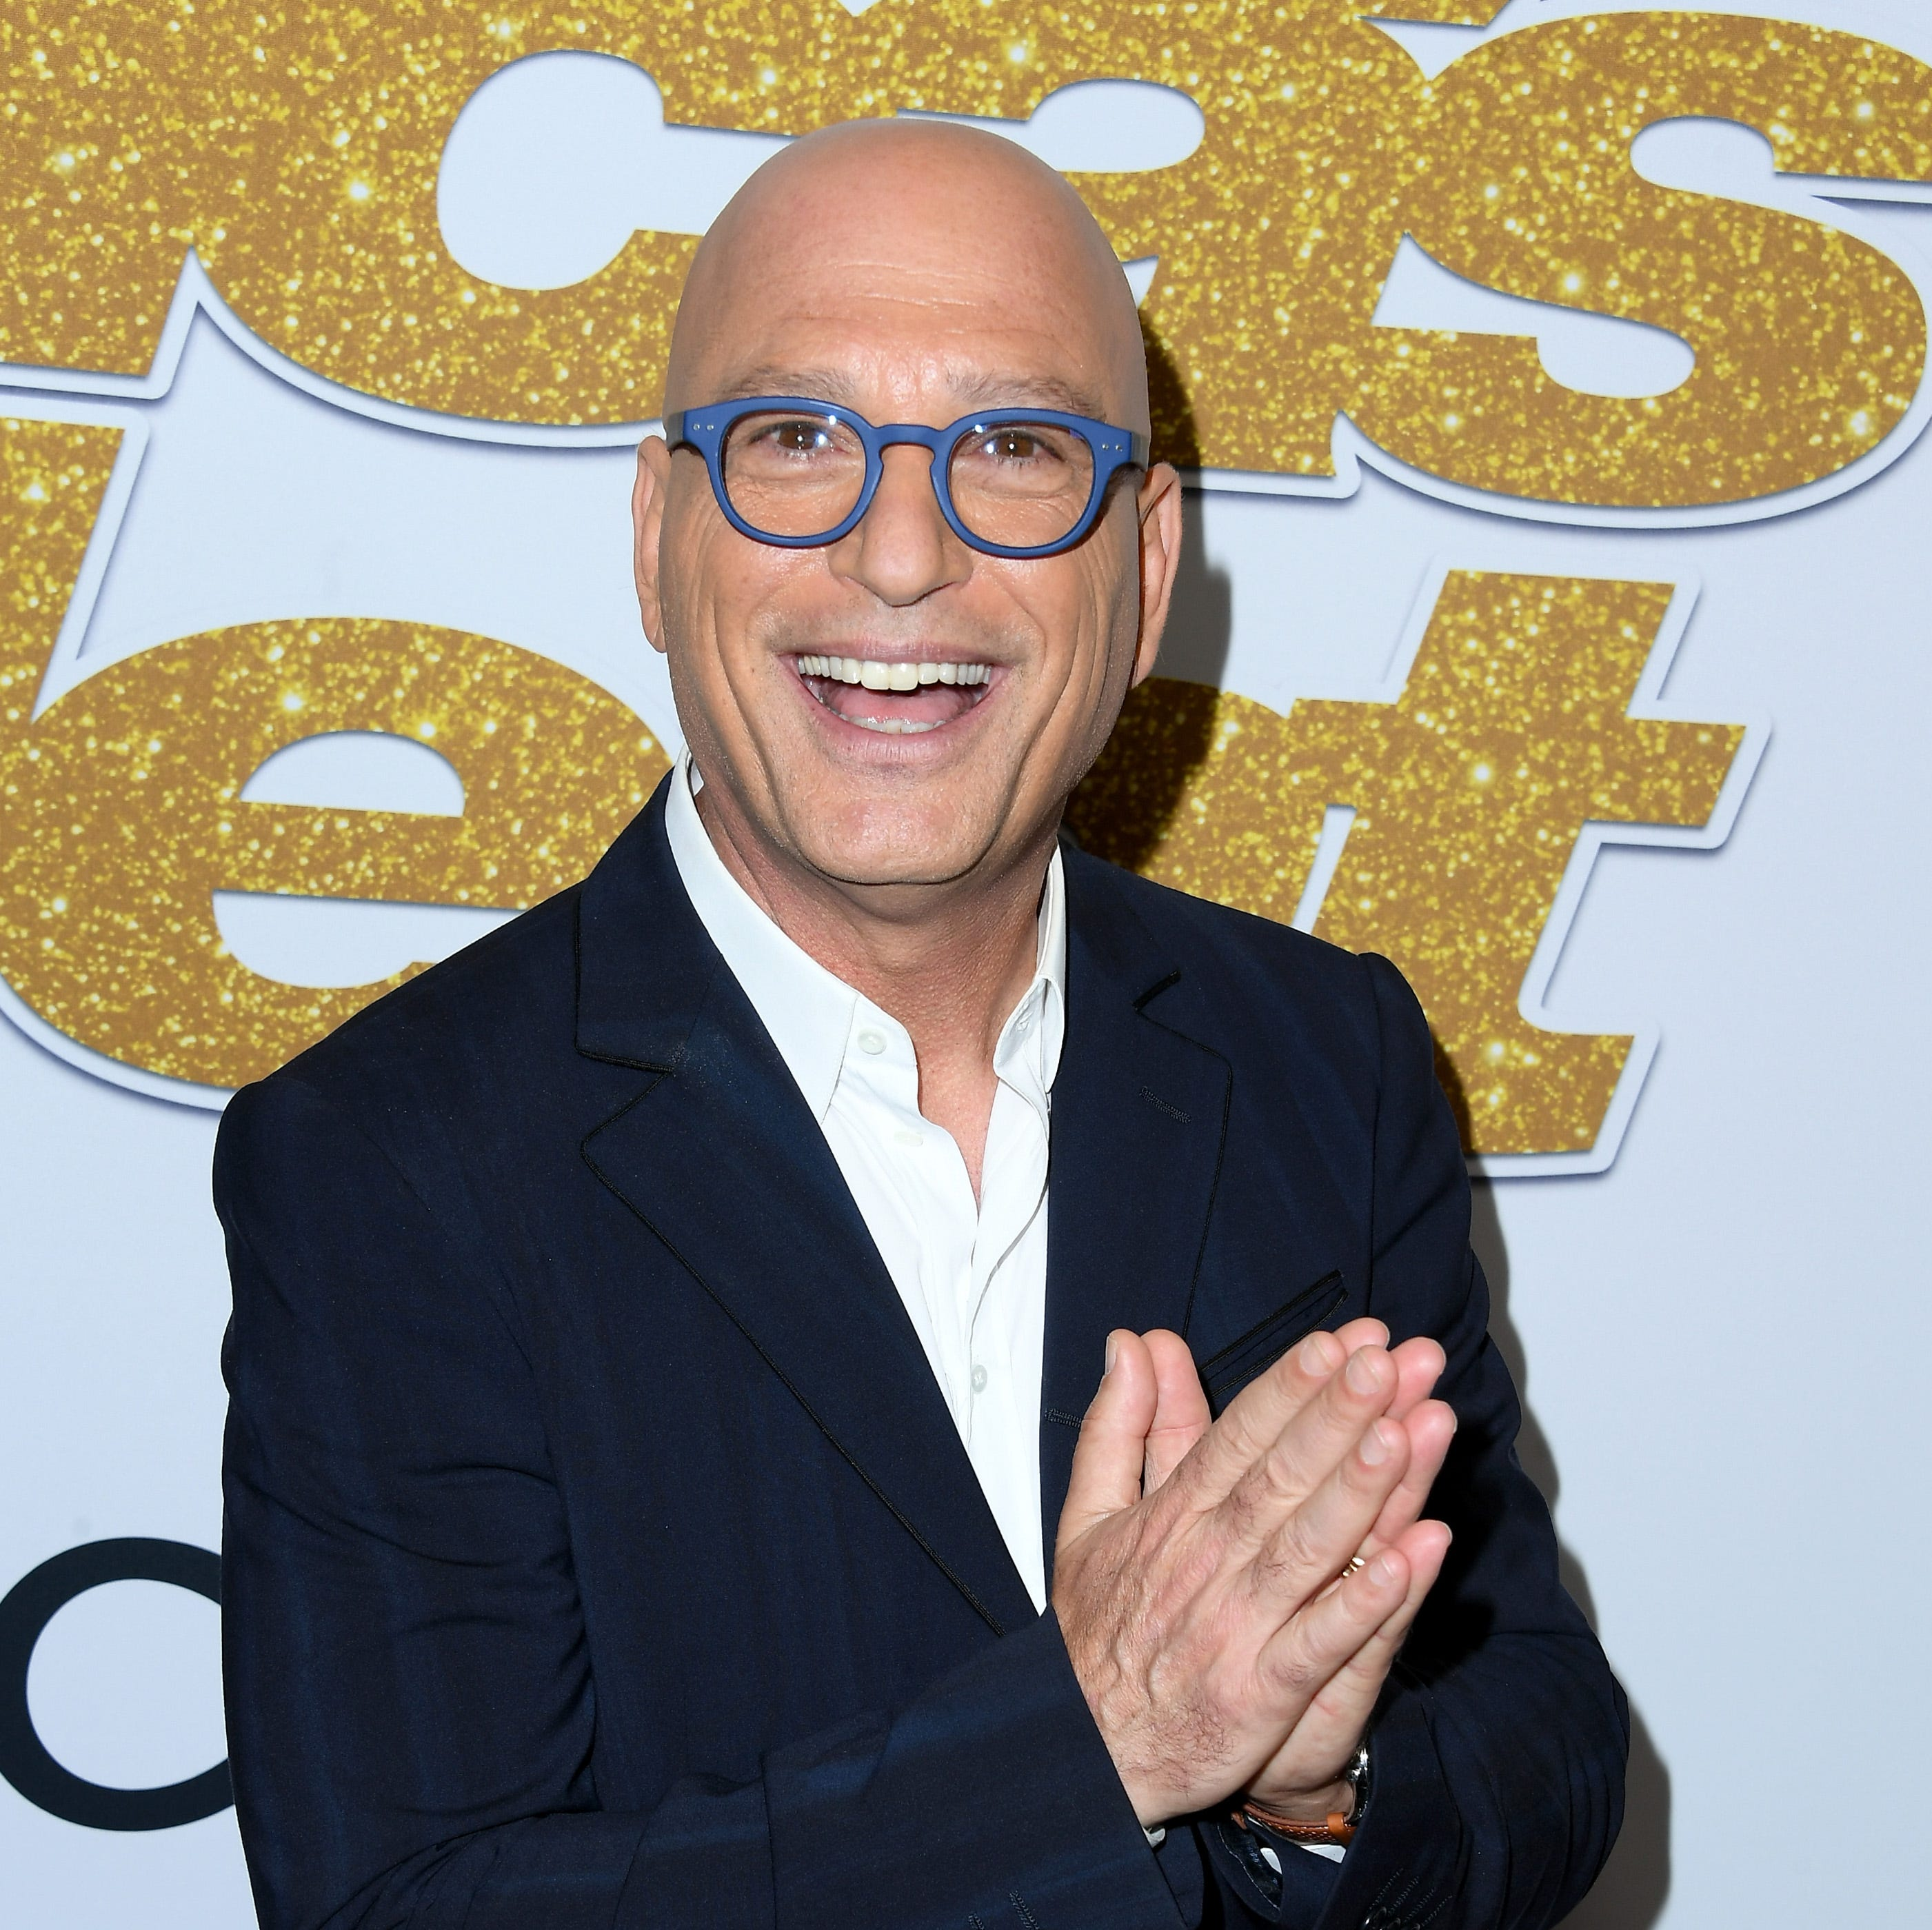 'America's Got Talent' judge Howie Mandel poses on the red carpet after the first live show of the season on Aug. 14 at the Dolby Theatre in Los Angeles.